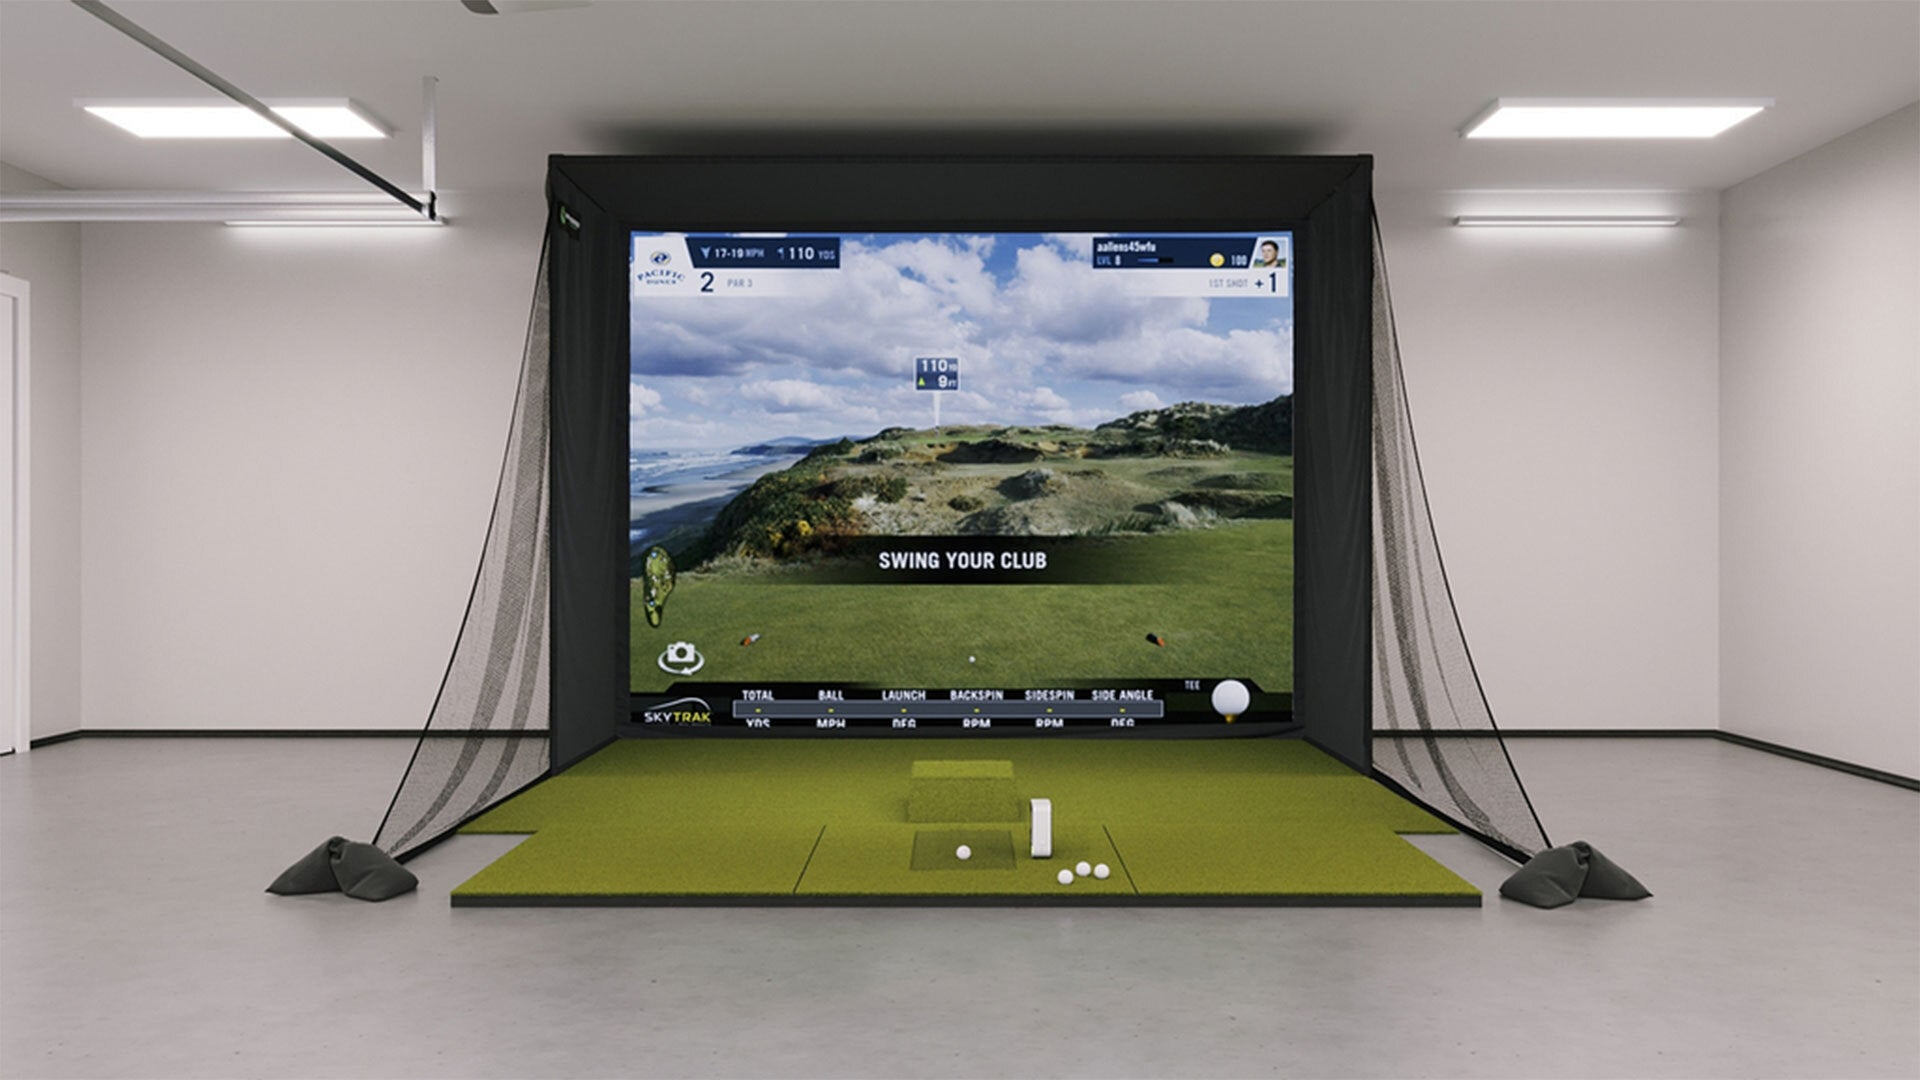 SkyTrak SIG12 Golf Simulator in a Garage Setting